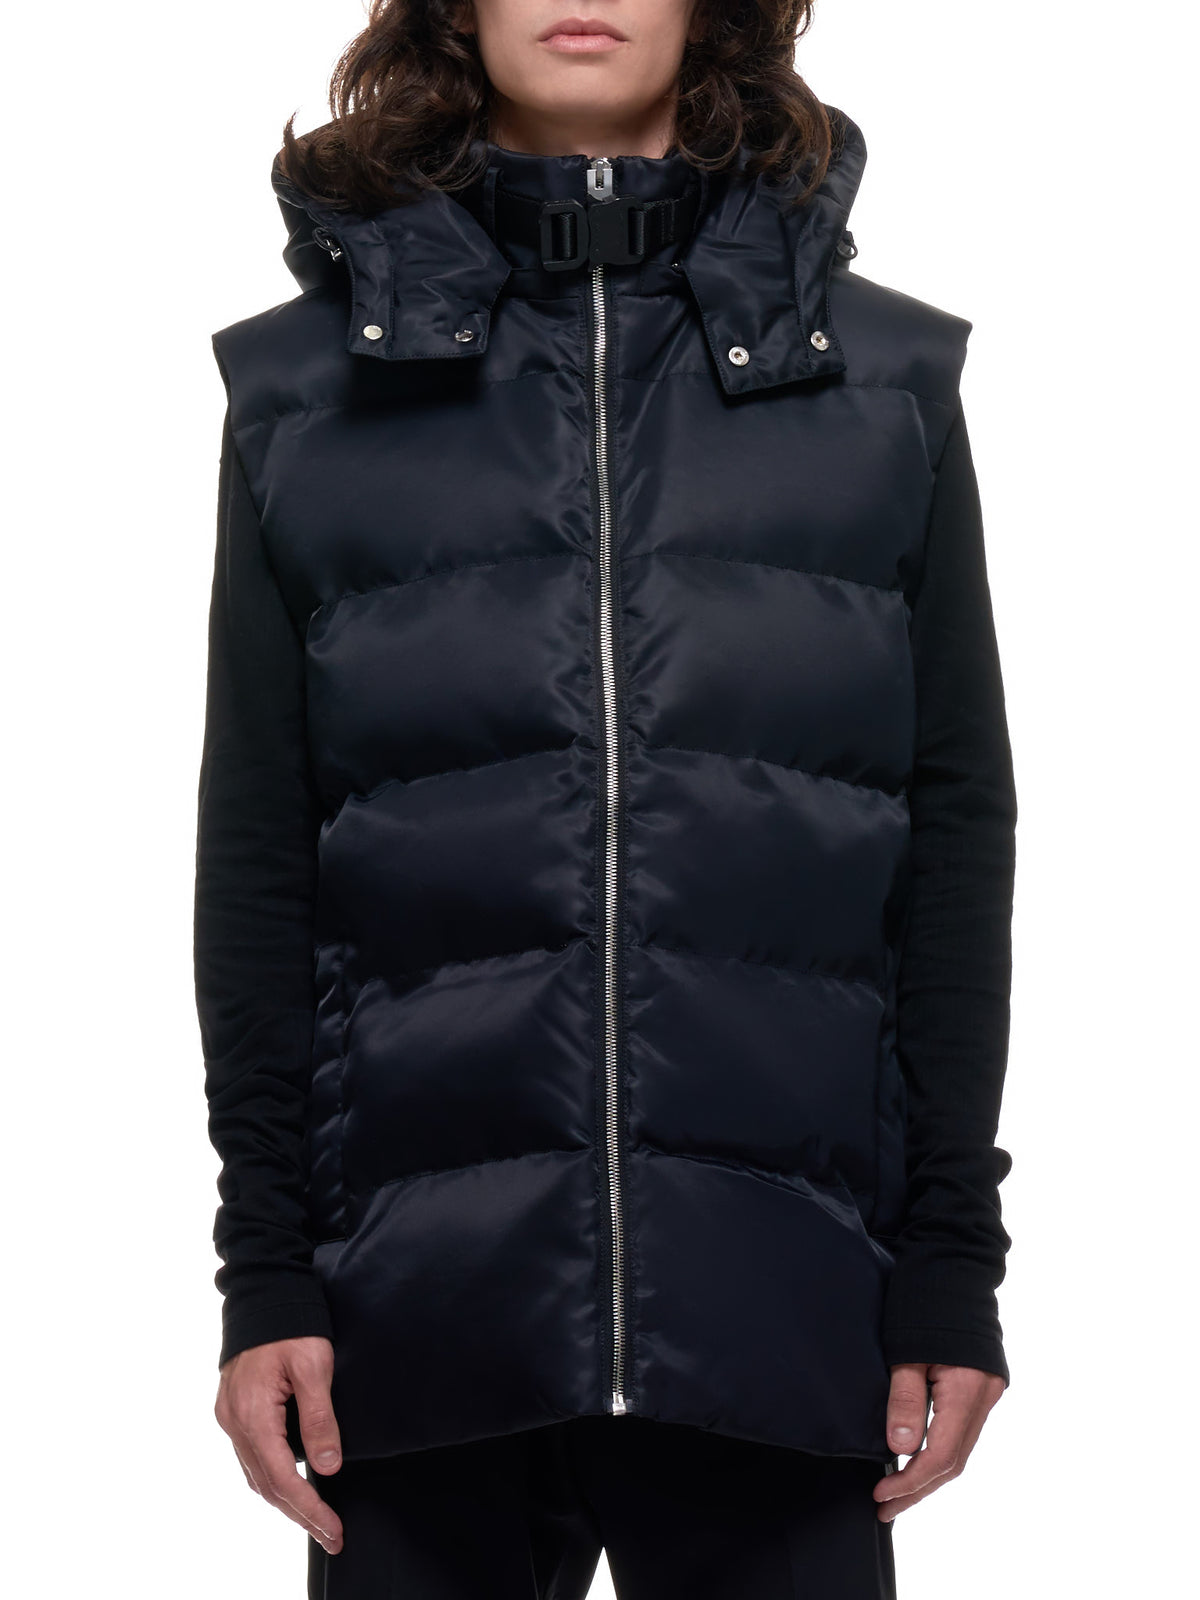 Padded Zip-up Vest (MOU0171FA01-BLACK)